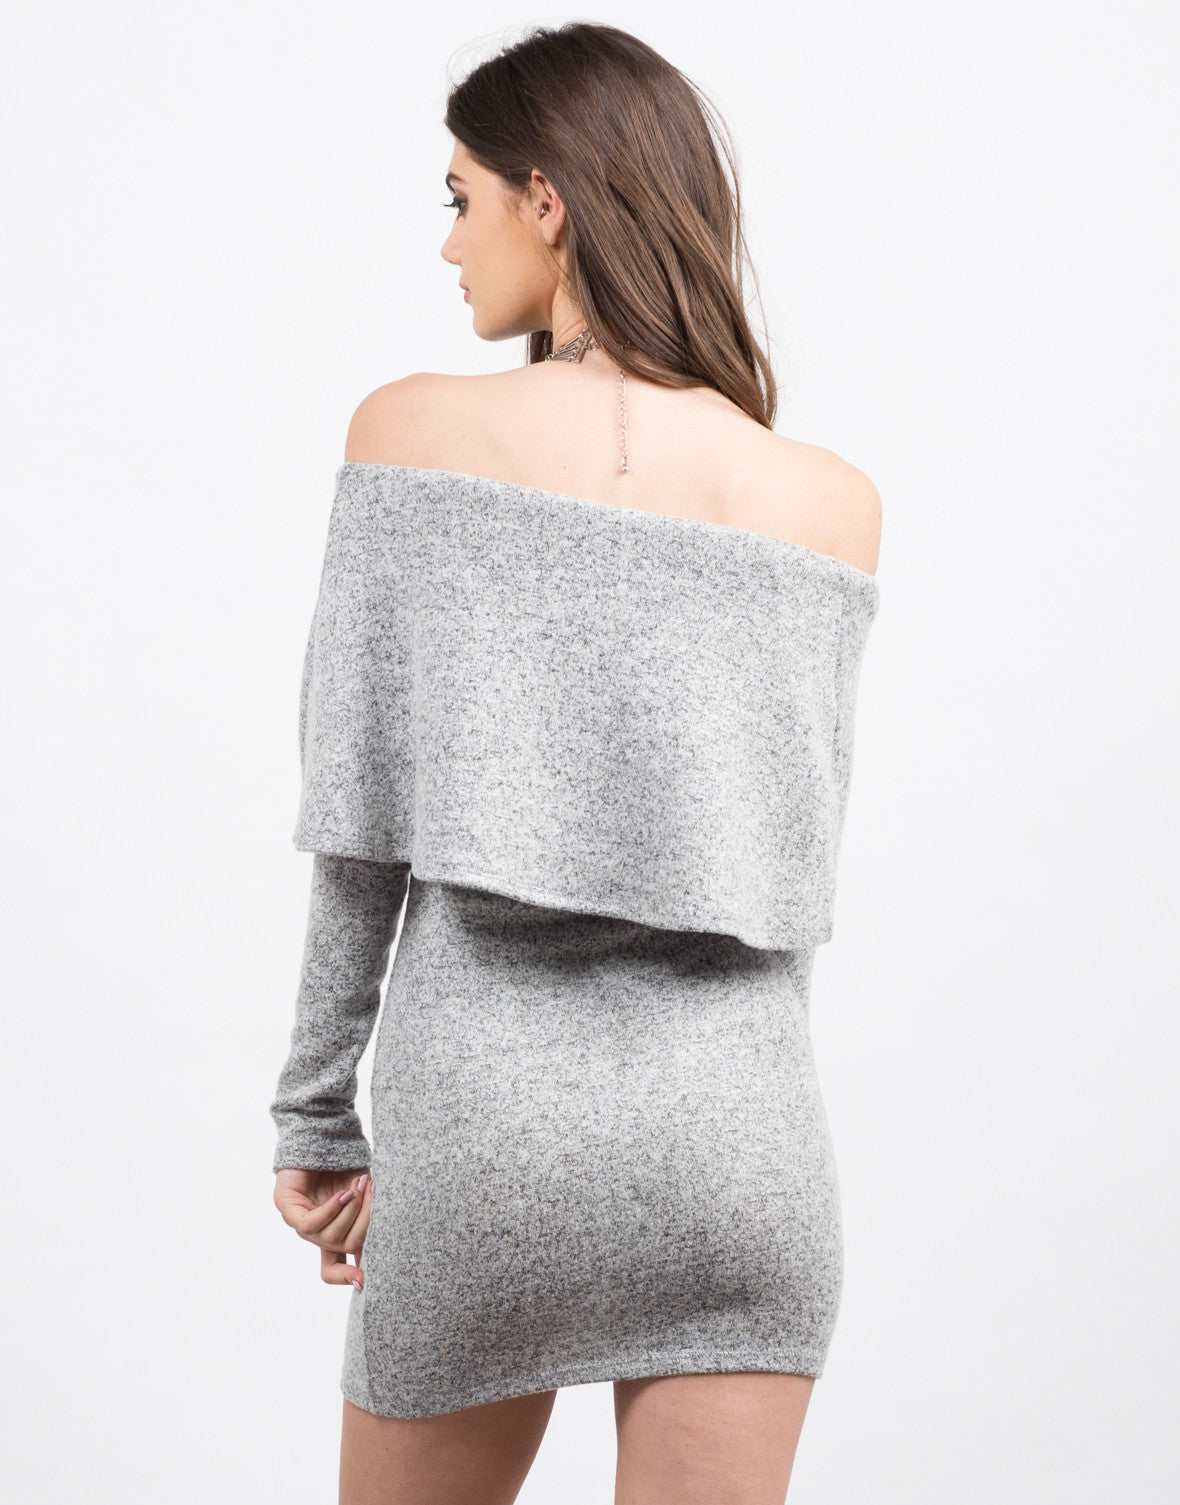 Back View of Soft Off the Shoulder Dress